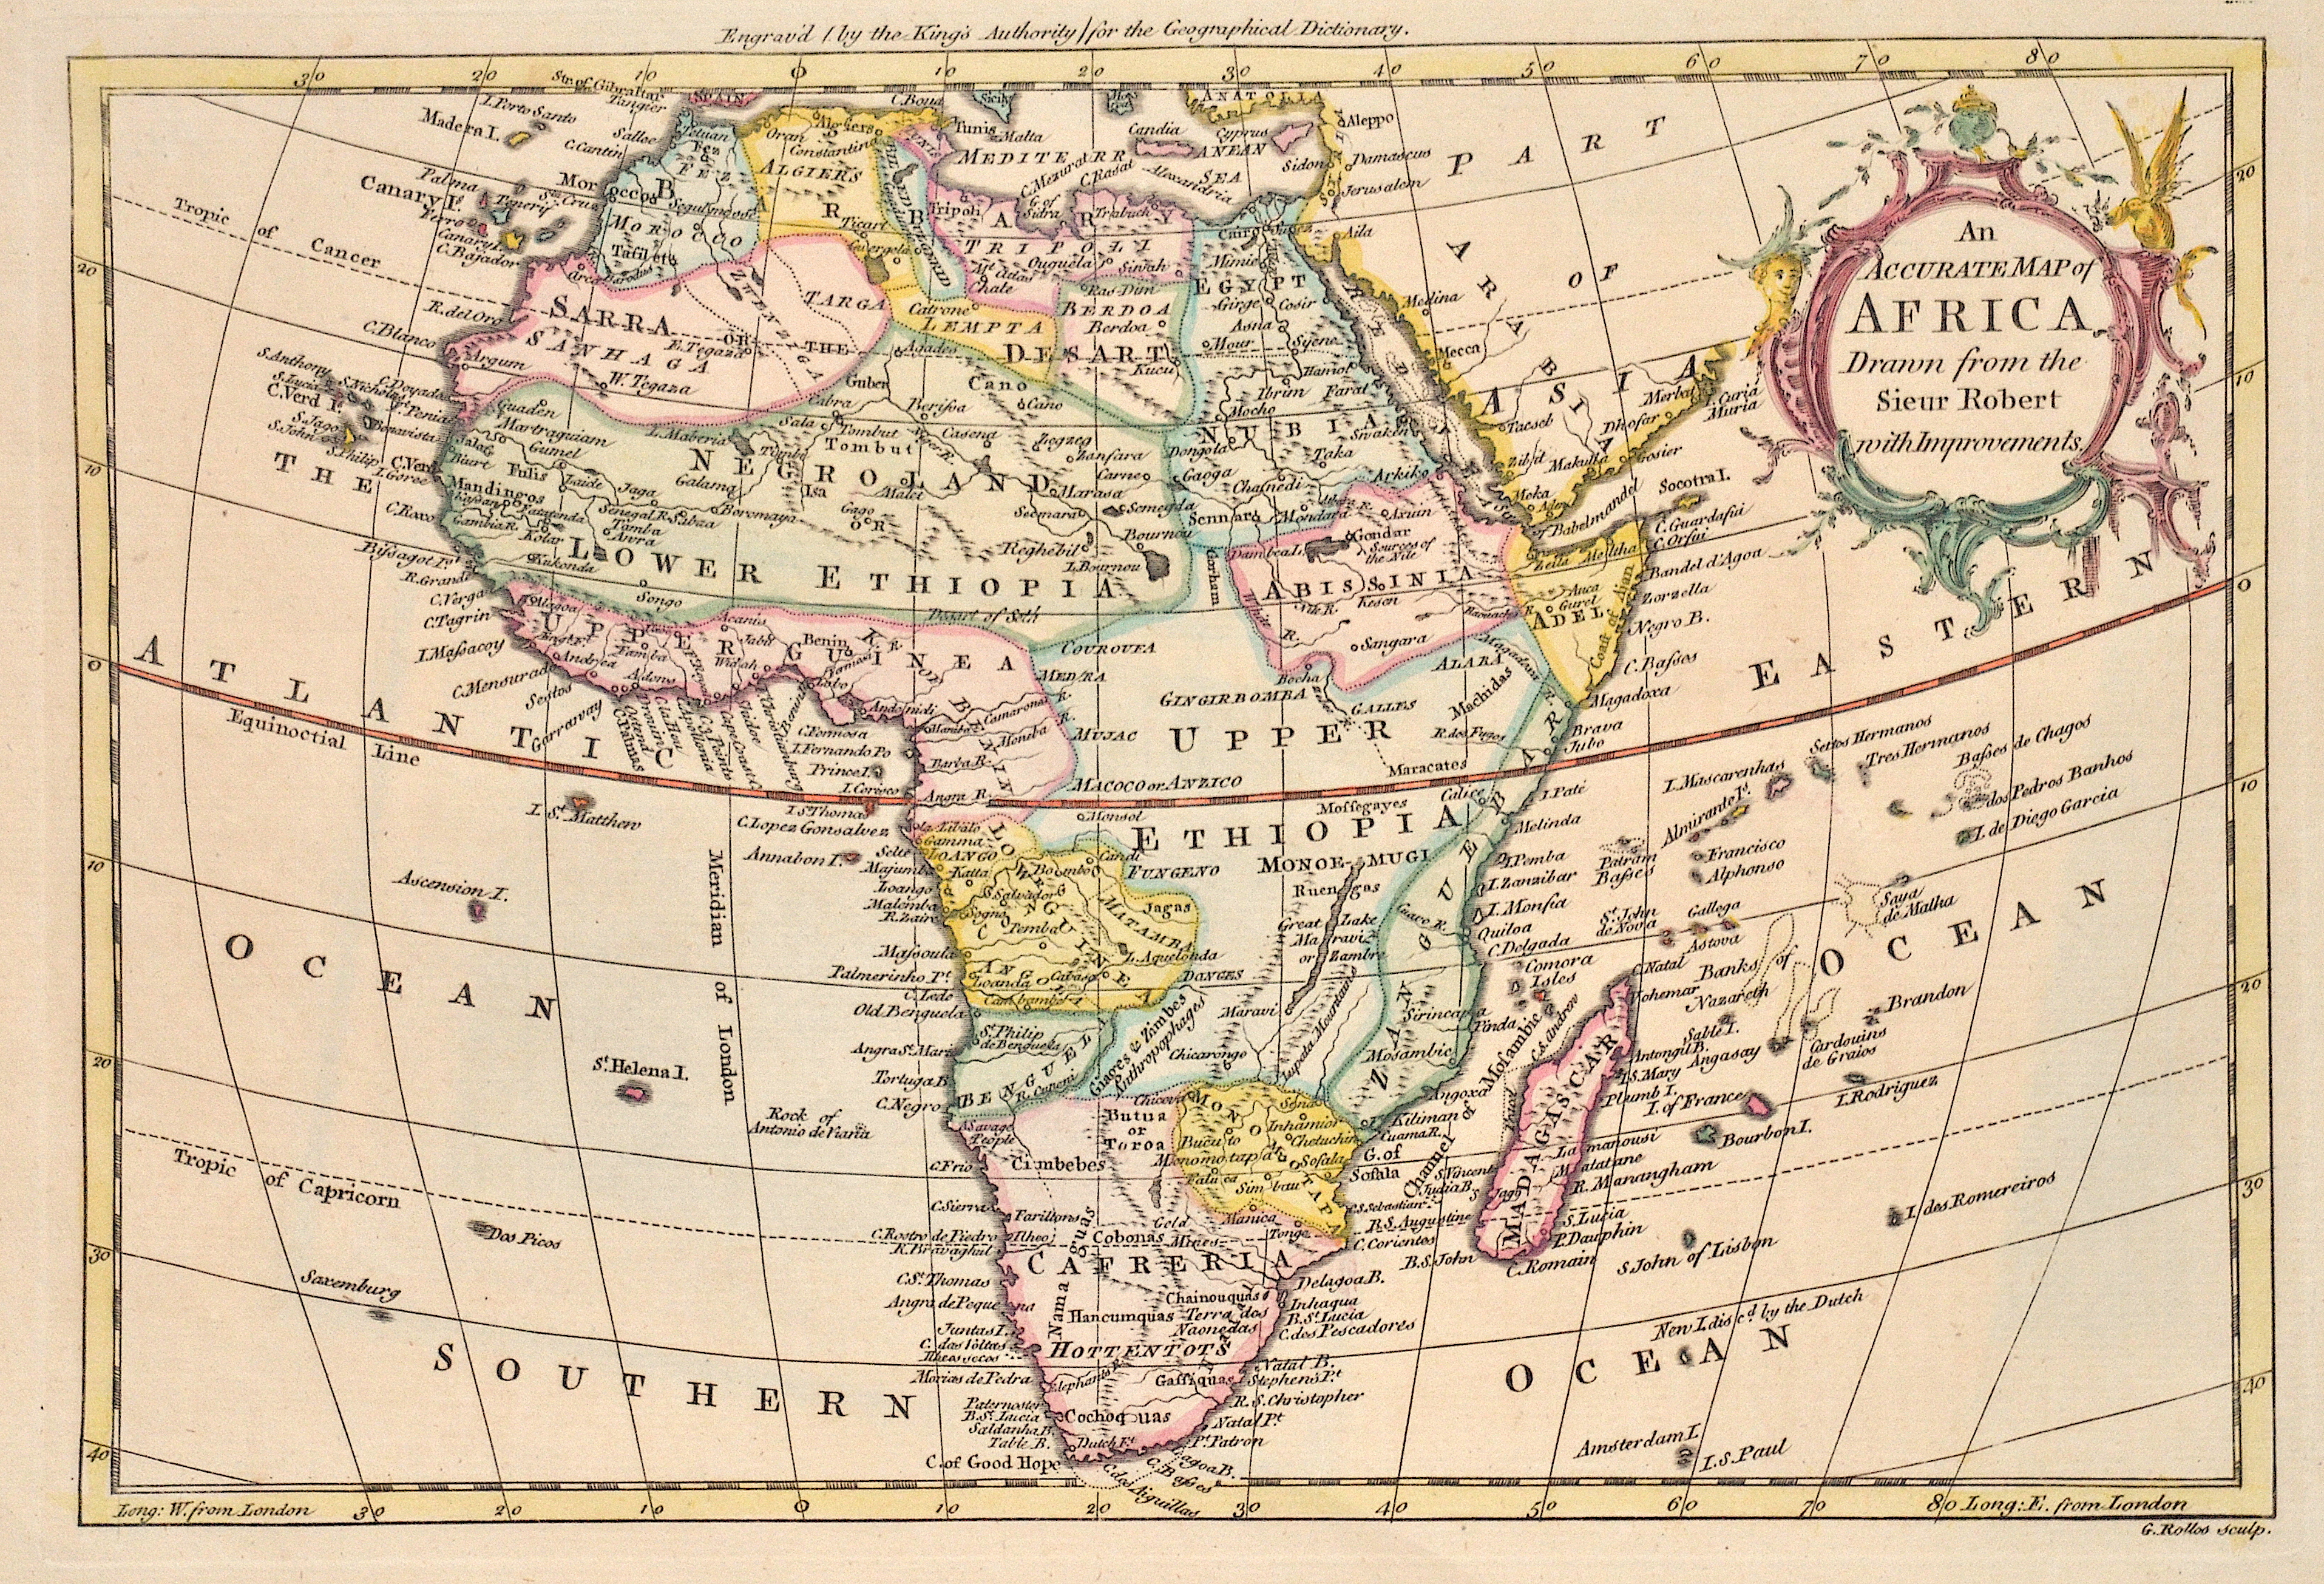 Robert Gilles (Sr.) An Accurate Map of Africa. Drawn from the Sieur Robert with Improvements.